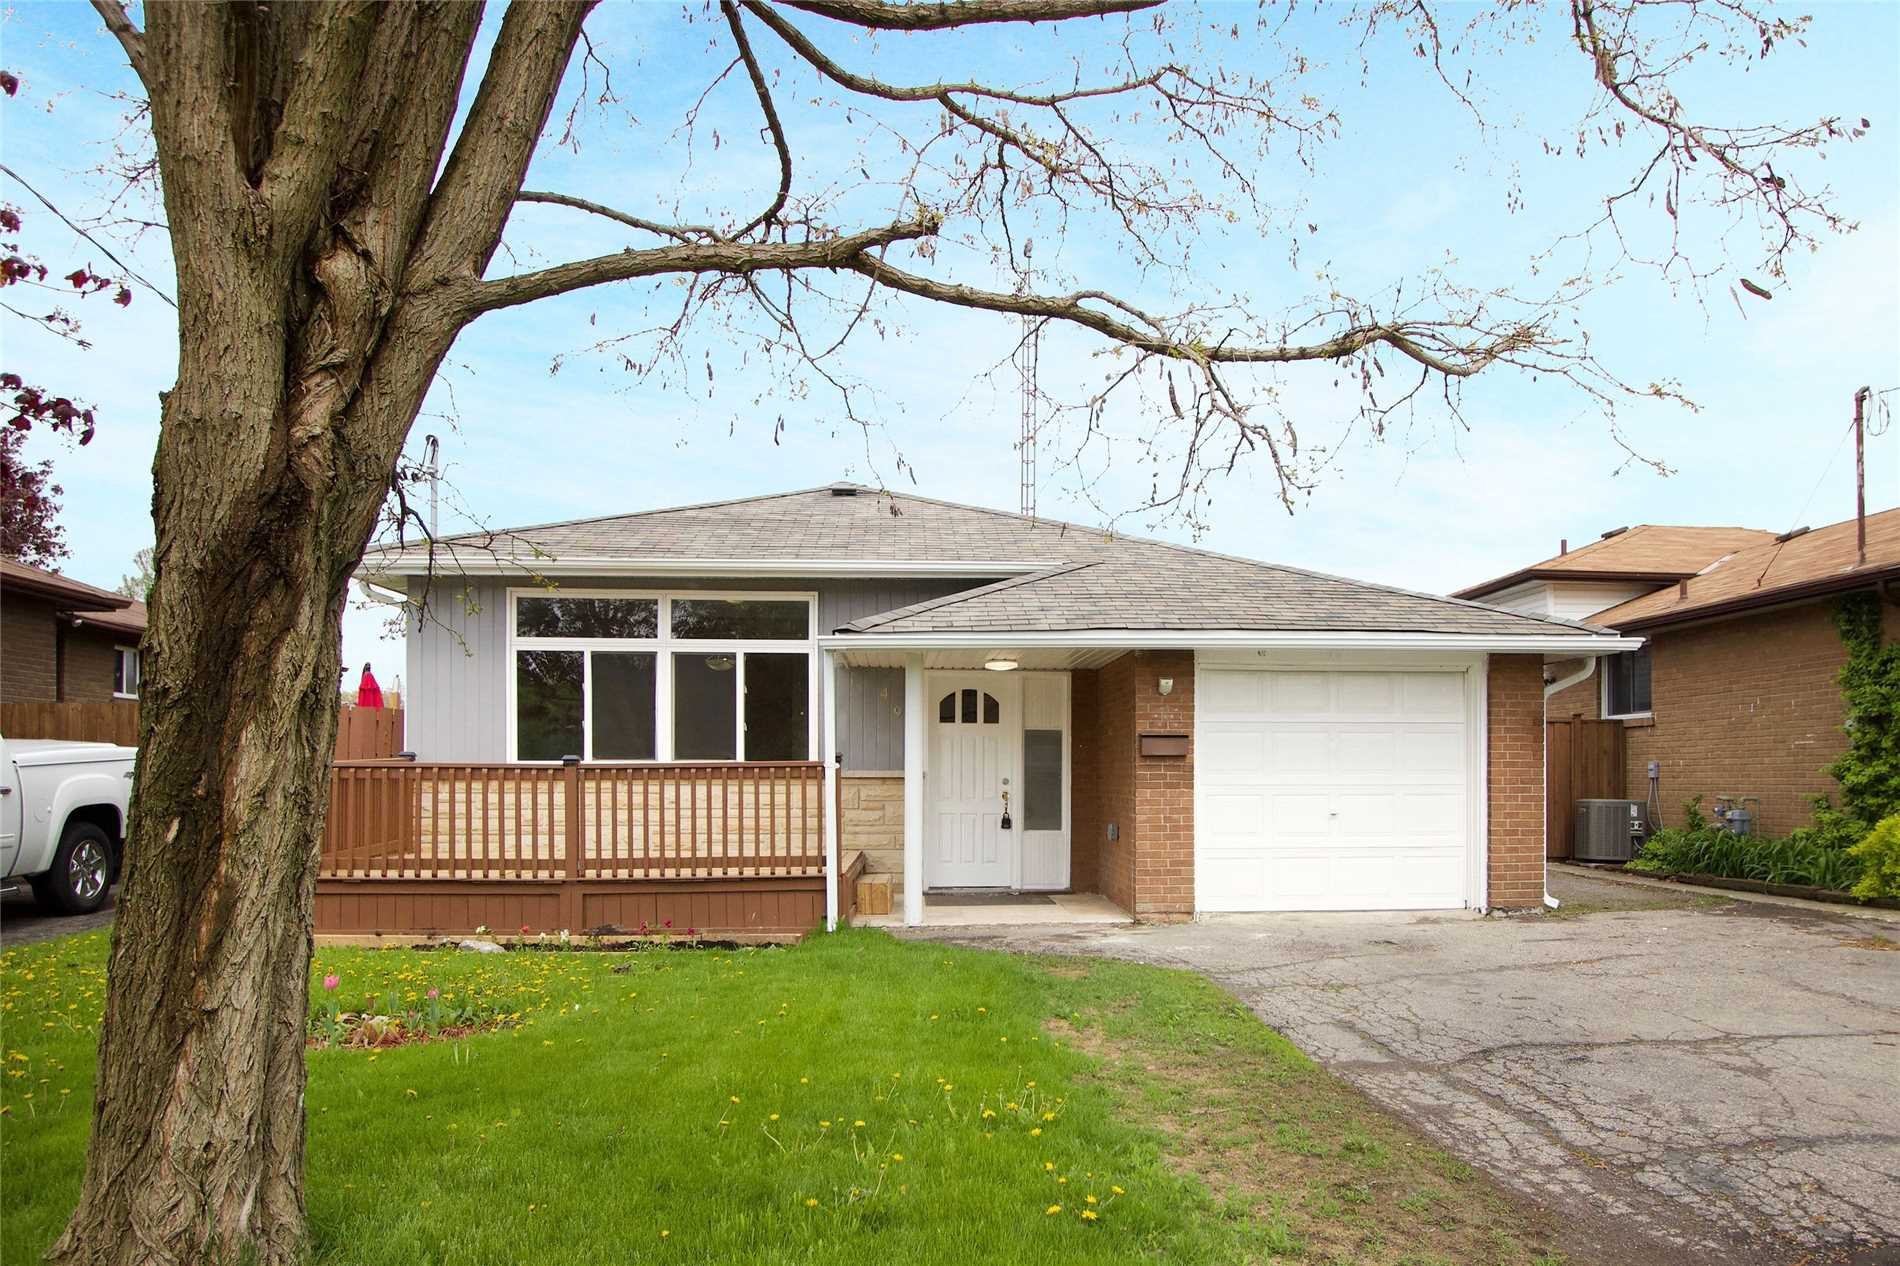 Main Photo: 499 S Wilson Road in Oshawa: Donevan House (Bungalow) for sale : MLS®# E4496817